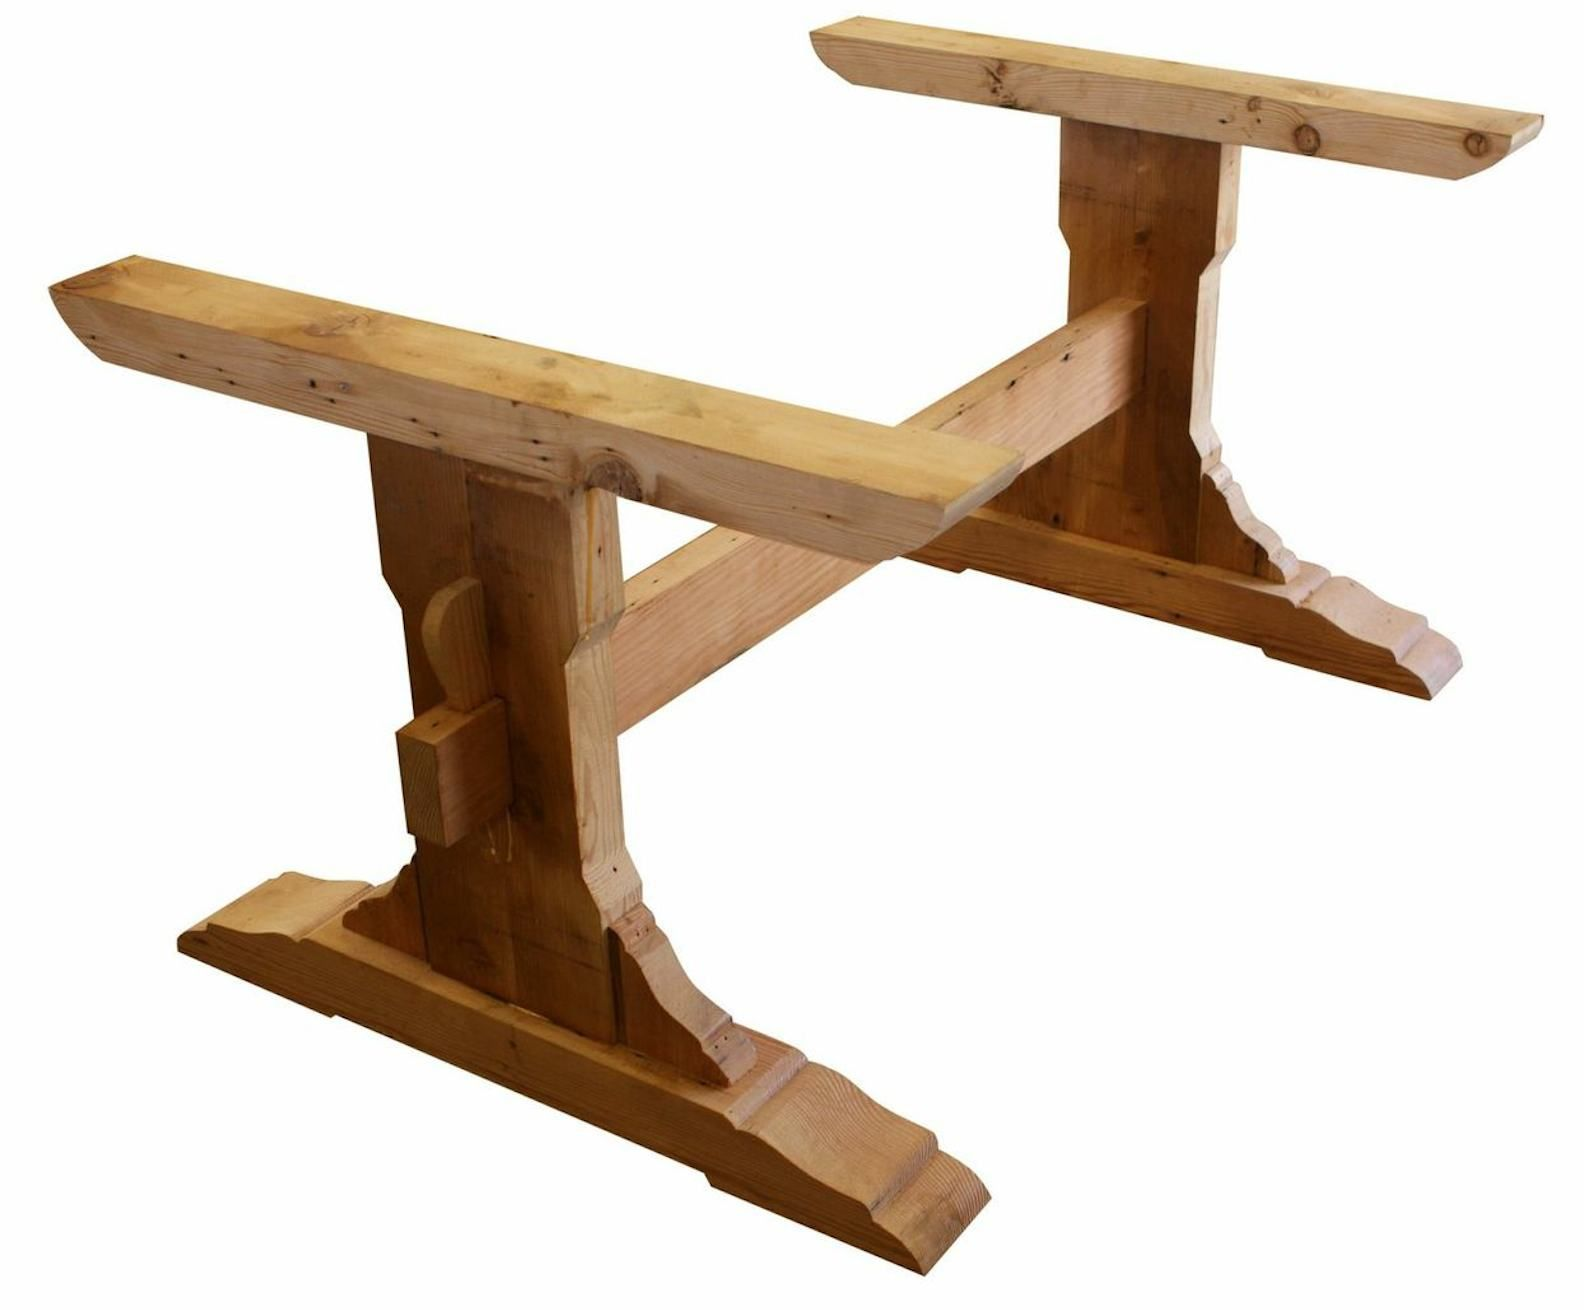 Image of reclaimed wood trestle table woodworking for Wooden table designs images